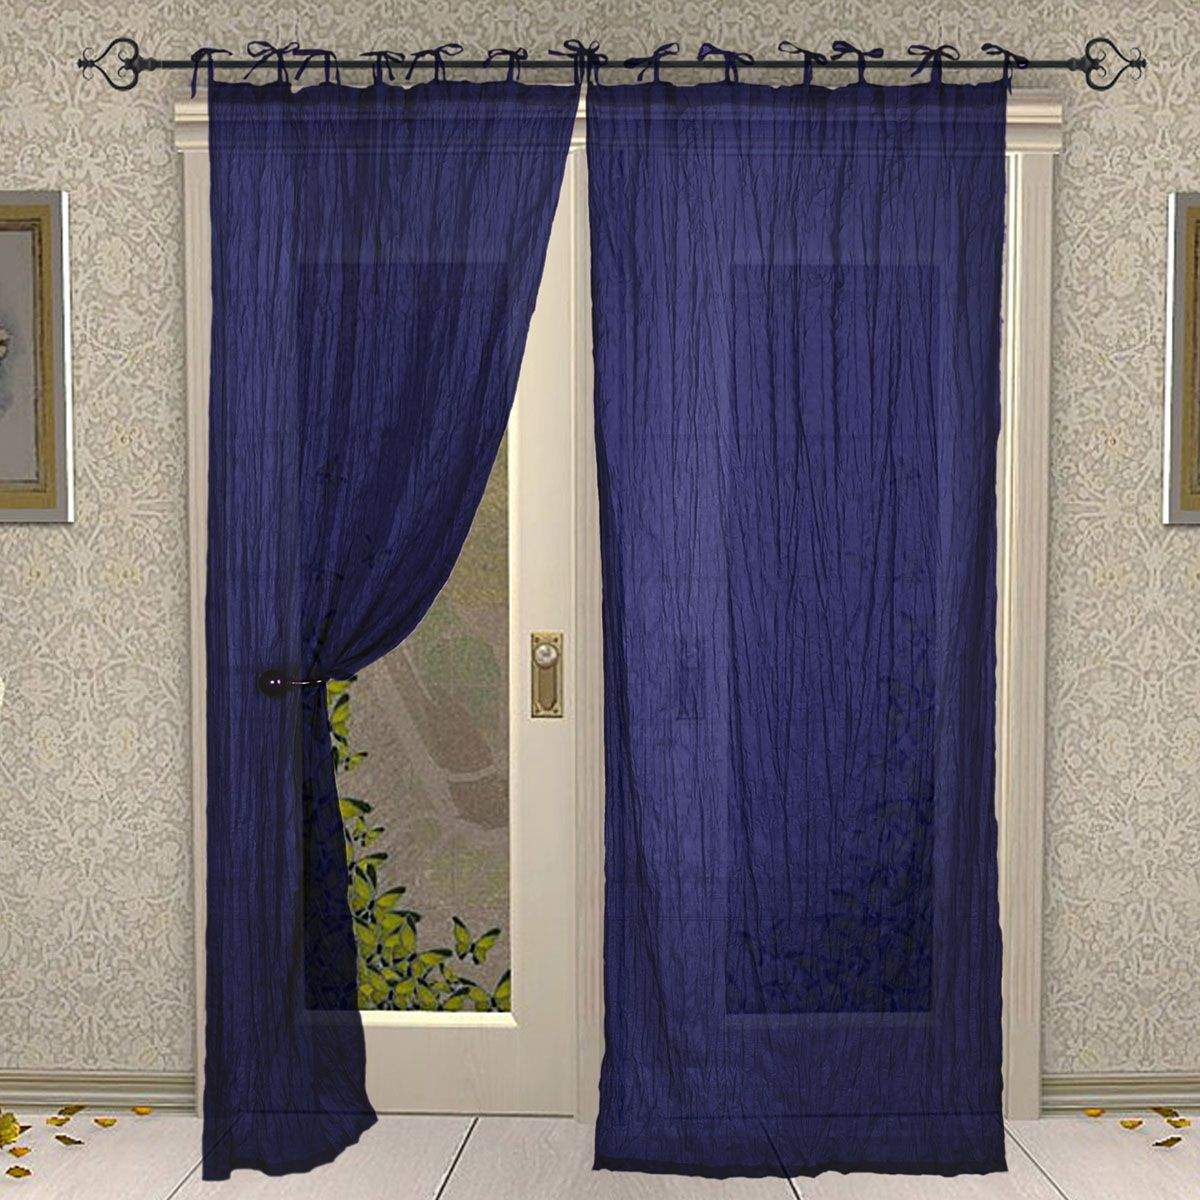 Tie Top Cotton Plain Solid Blue Curtain for Windows and Door